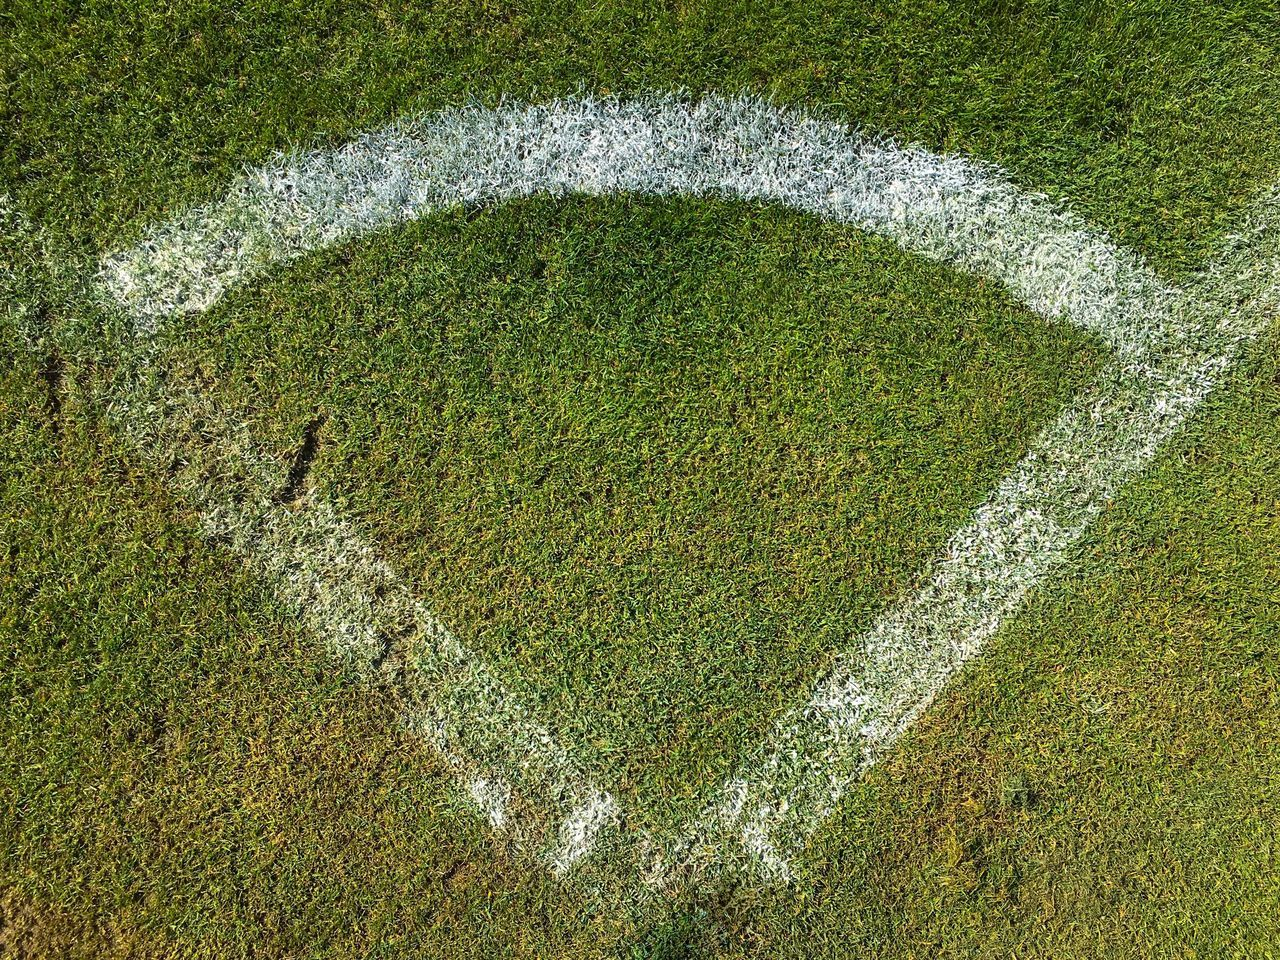 Grass High Angle View Green Color Day Outdoors No People Nature Sport Soccer Field Close-up Eyeem Market